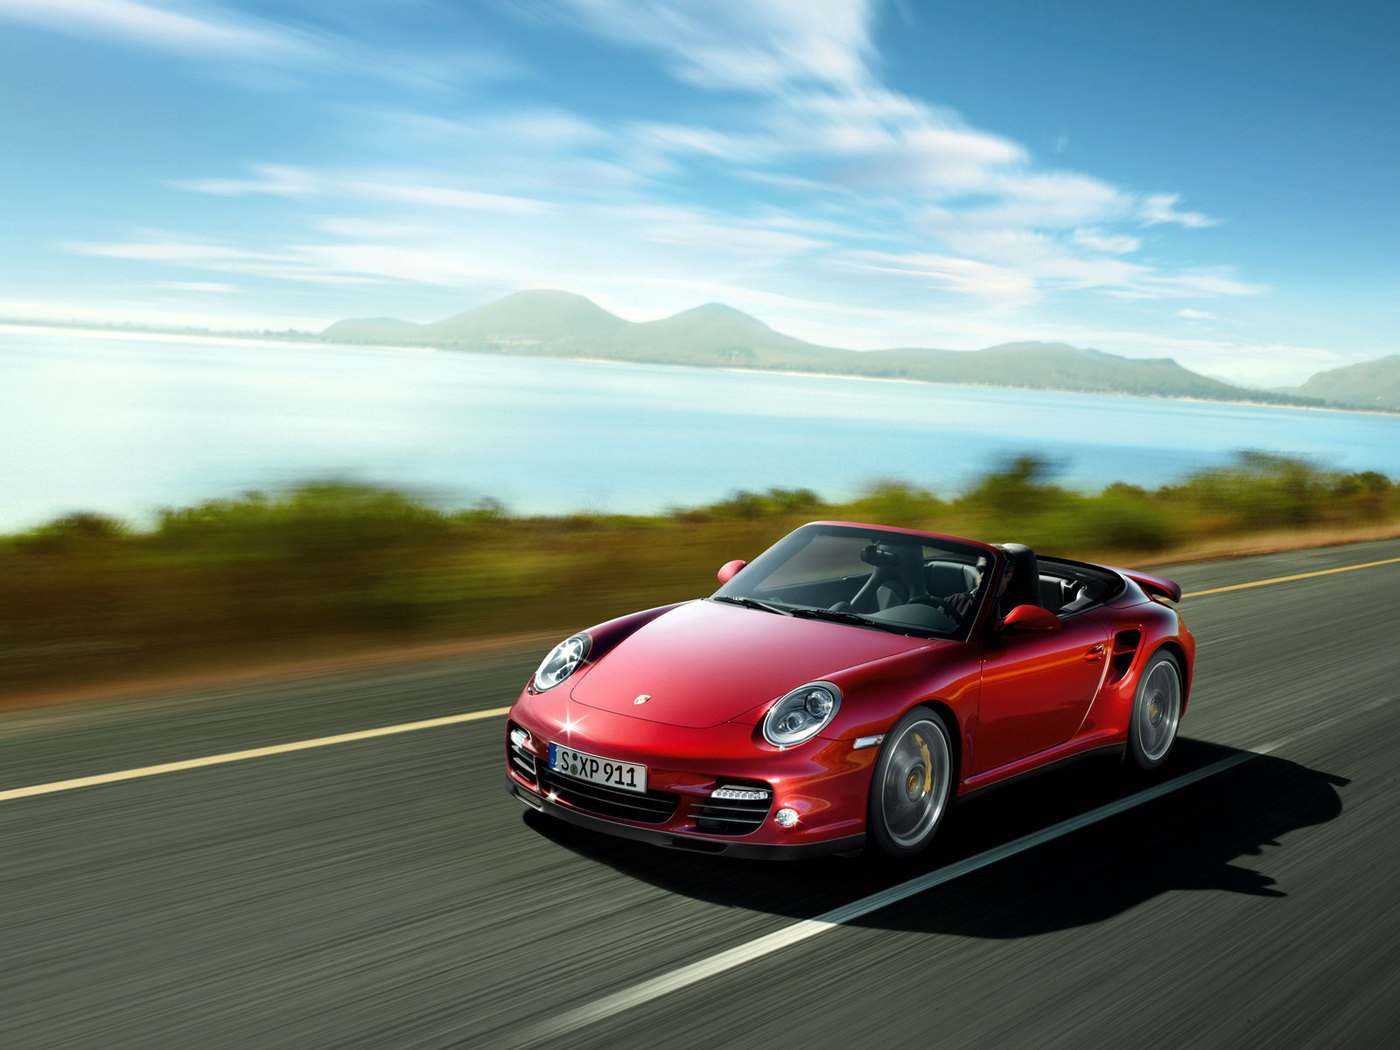 Porsche 911 Turbo Cabrio Wallpapers HD Wallpapers 1400x1050